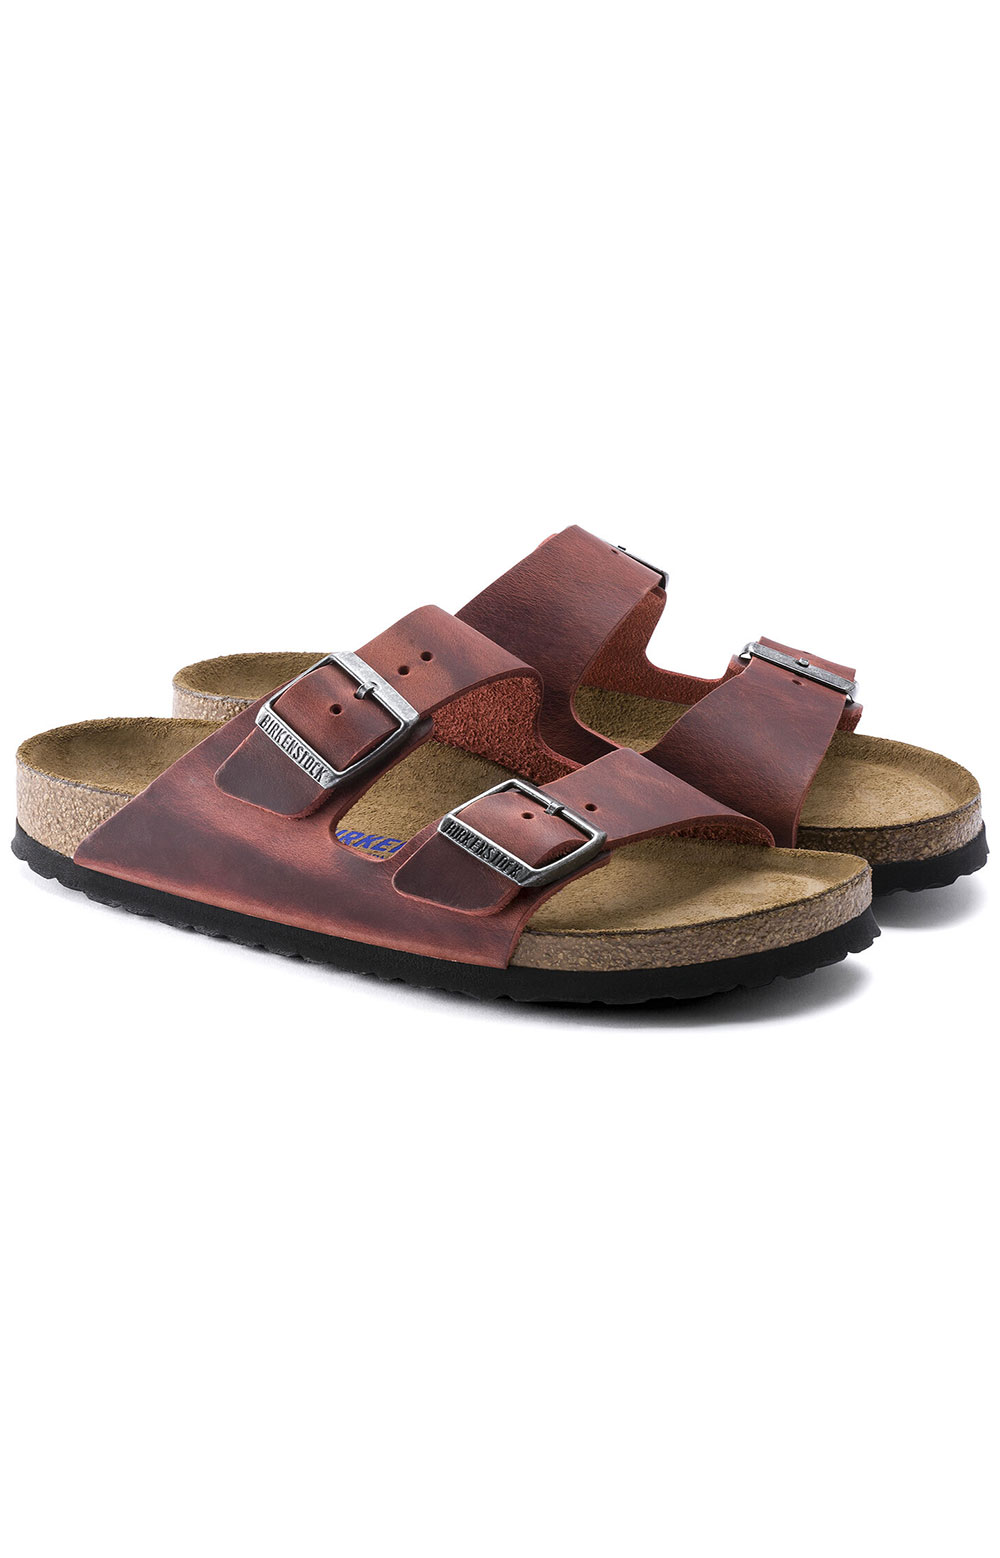 (1015545) Arizona Soft Footbed Sandals - Earth Red